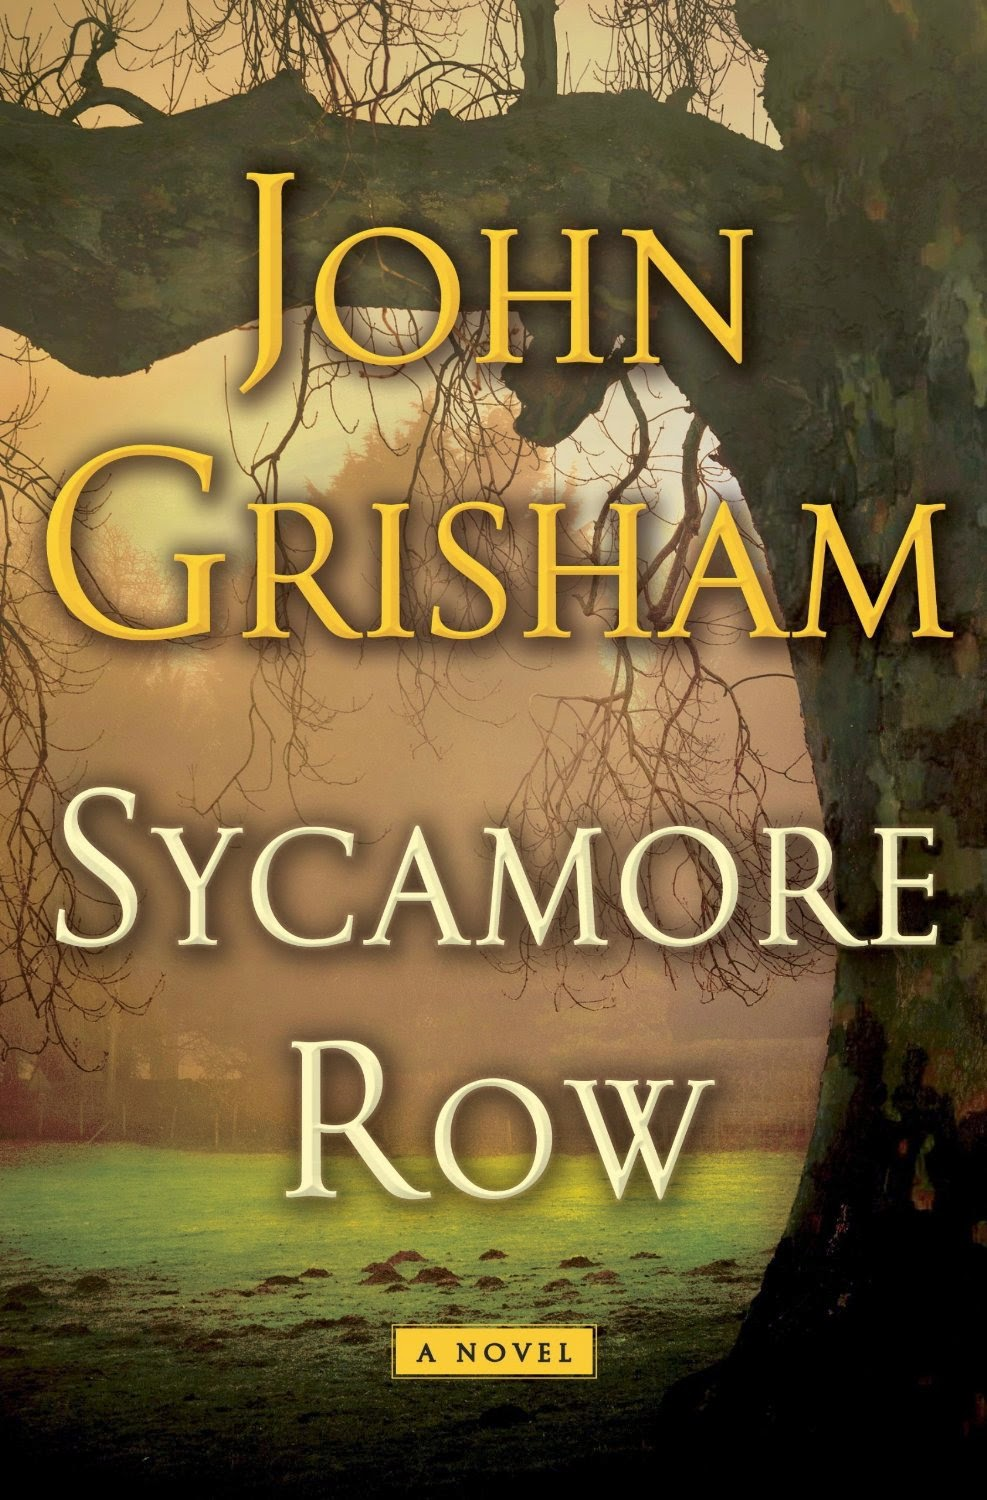 an overview of the literary success of john grisham I suppose we don't expect writers of bestsellers to tamper with success, to attempt  to find the outer limits of their gift john grisham is different.